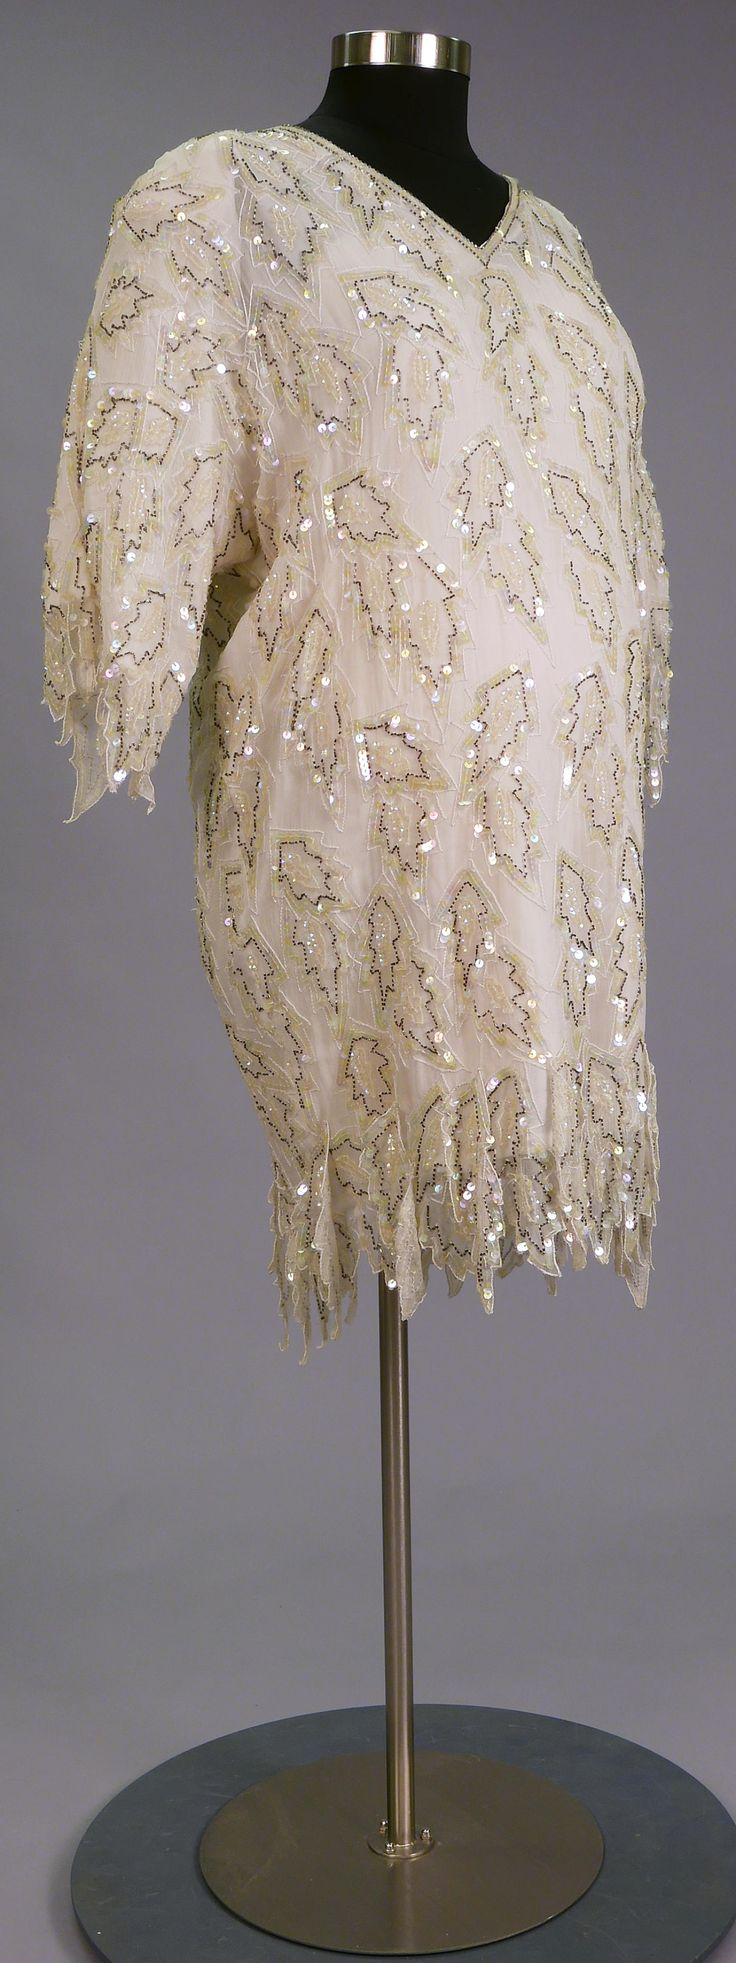 Maternity evening dresses, on this site. This one is vintage 1980.